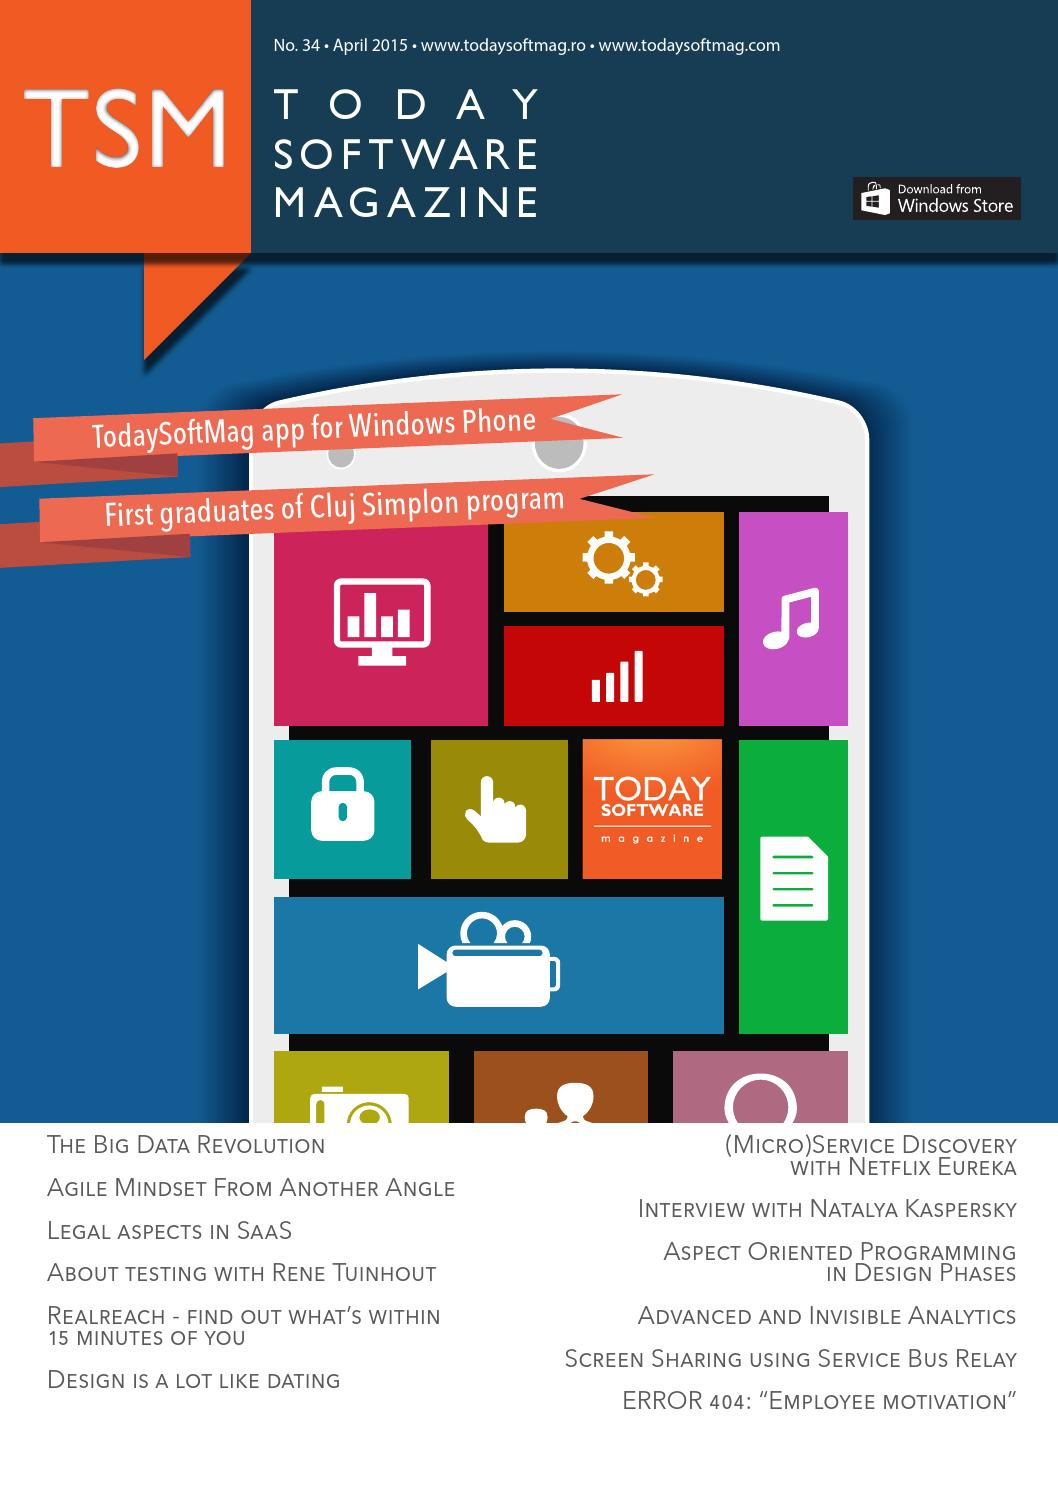 Issue 34 - April - Today Software Magazine by Today Software